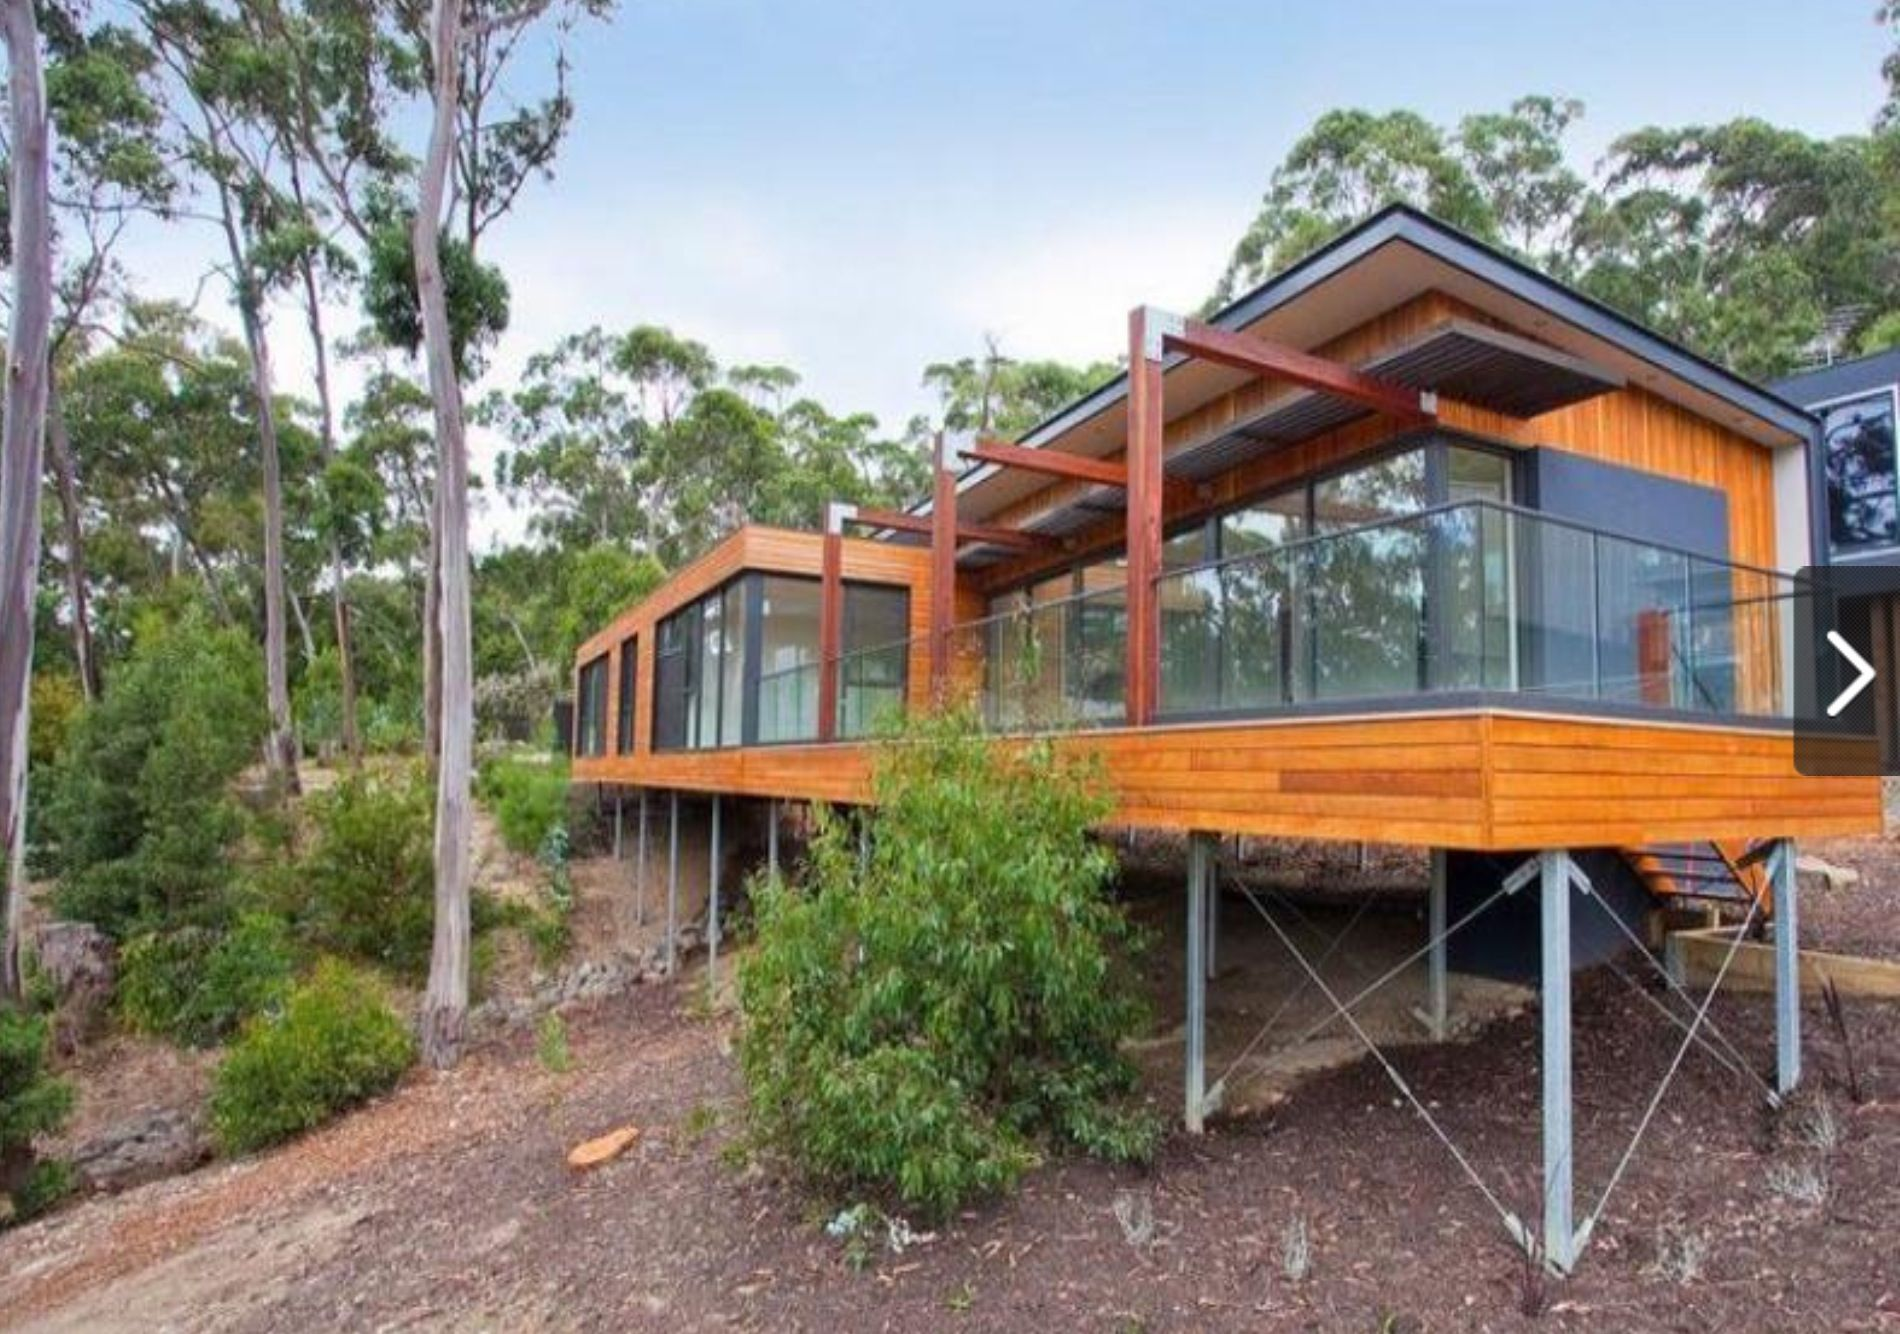 House On Slope Australia House On Stilts Woodland House